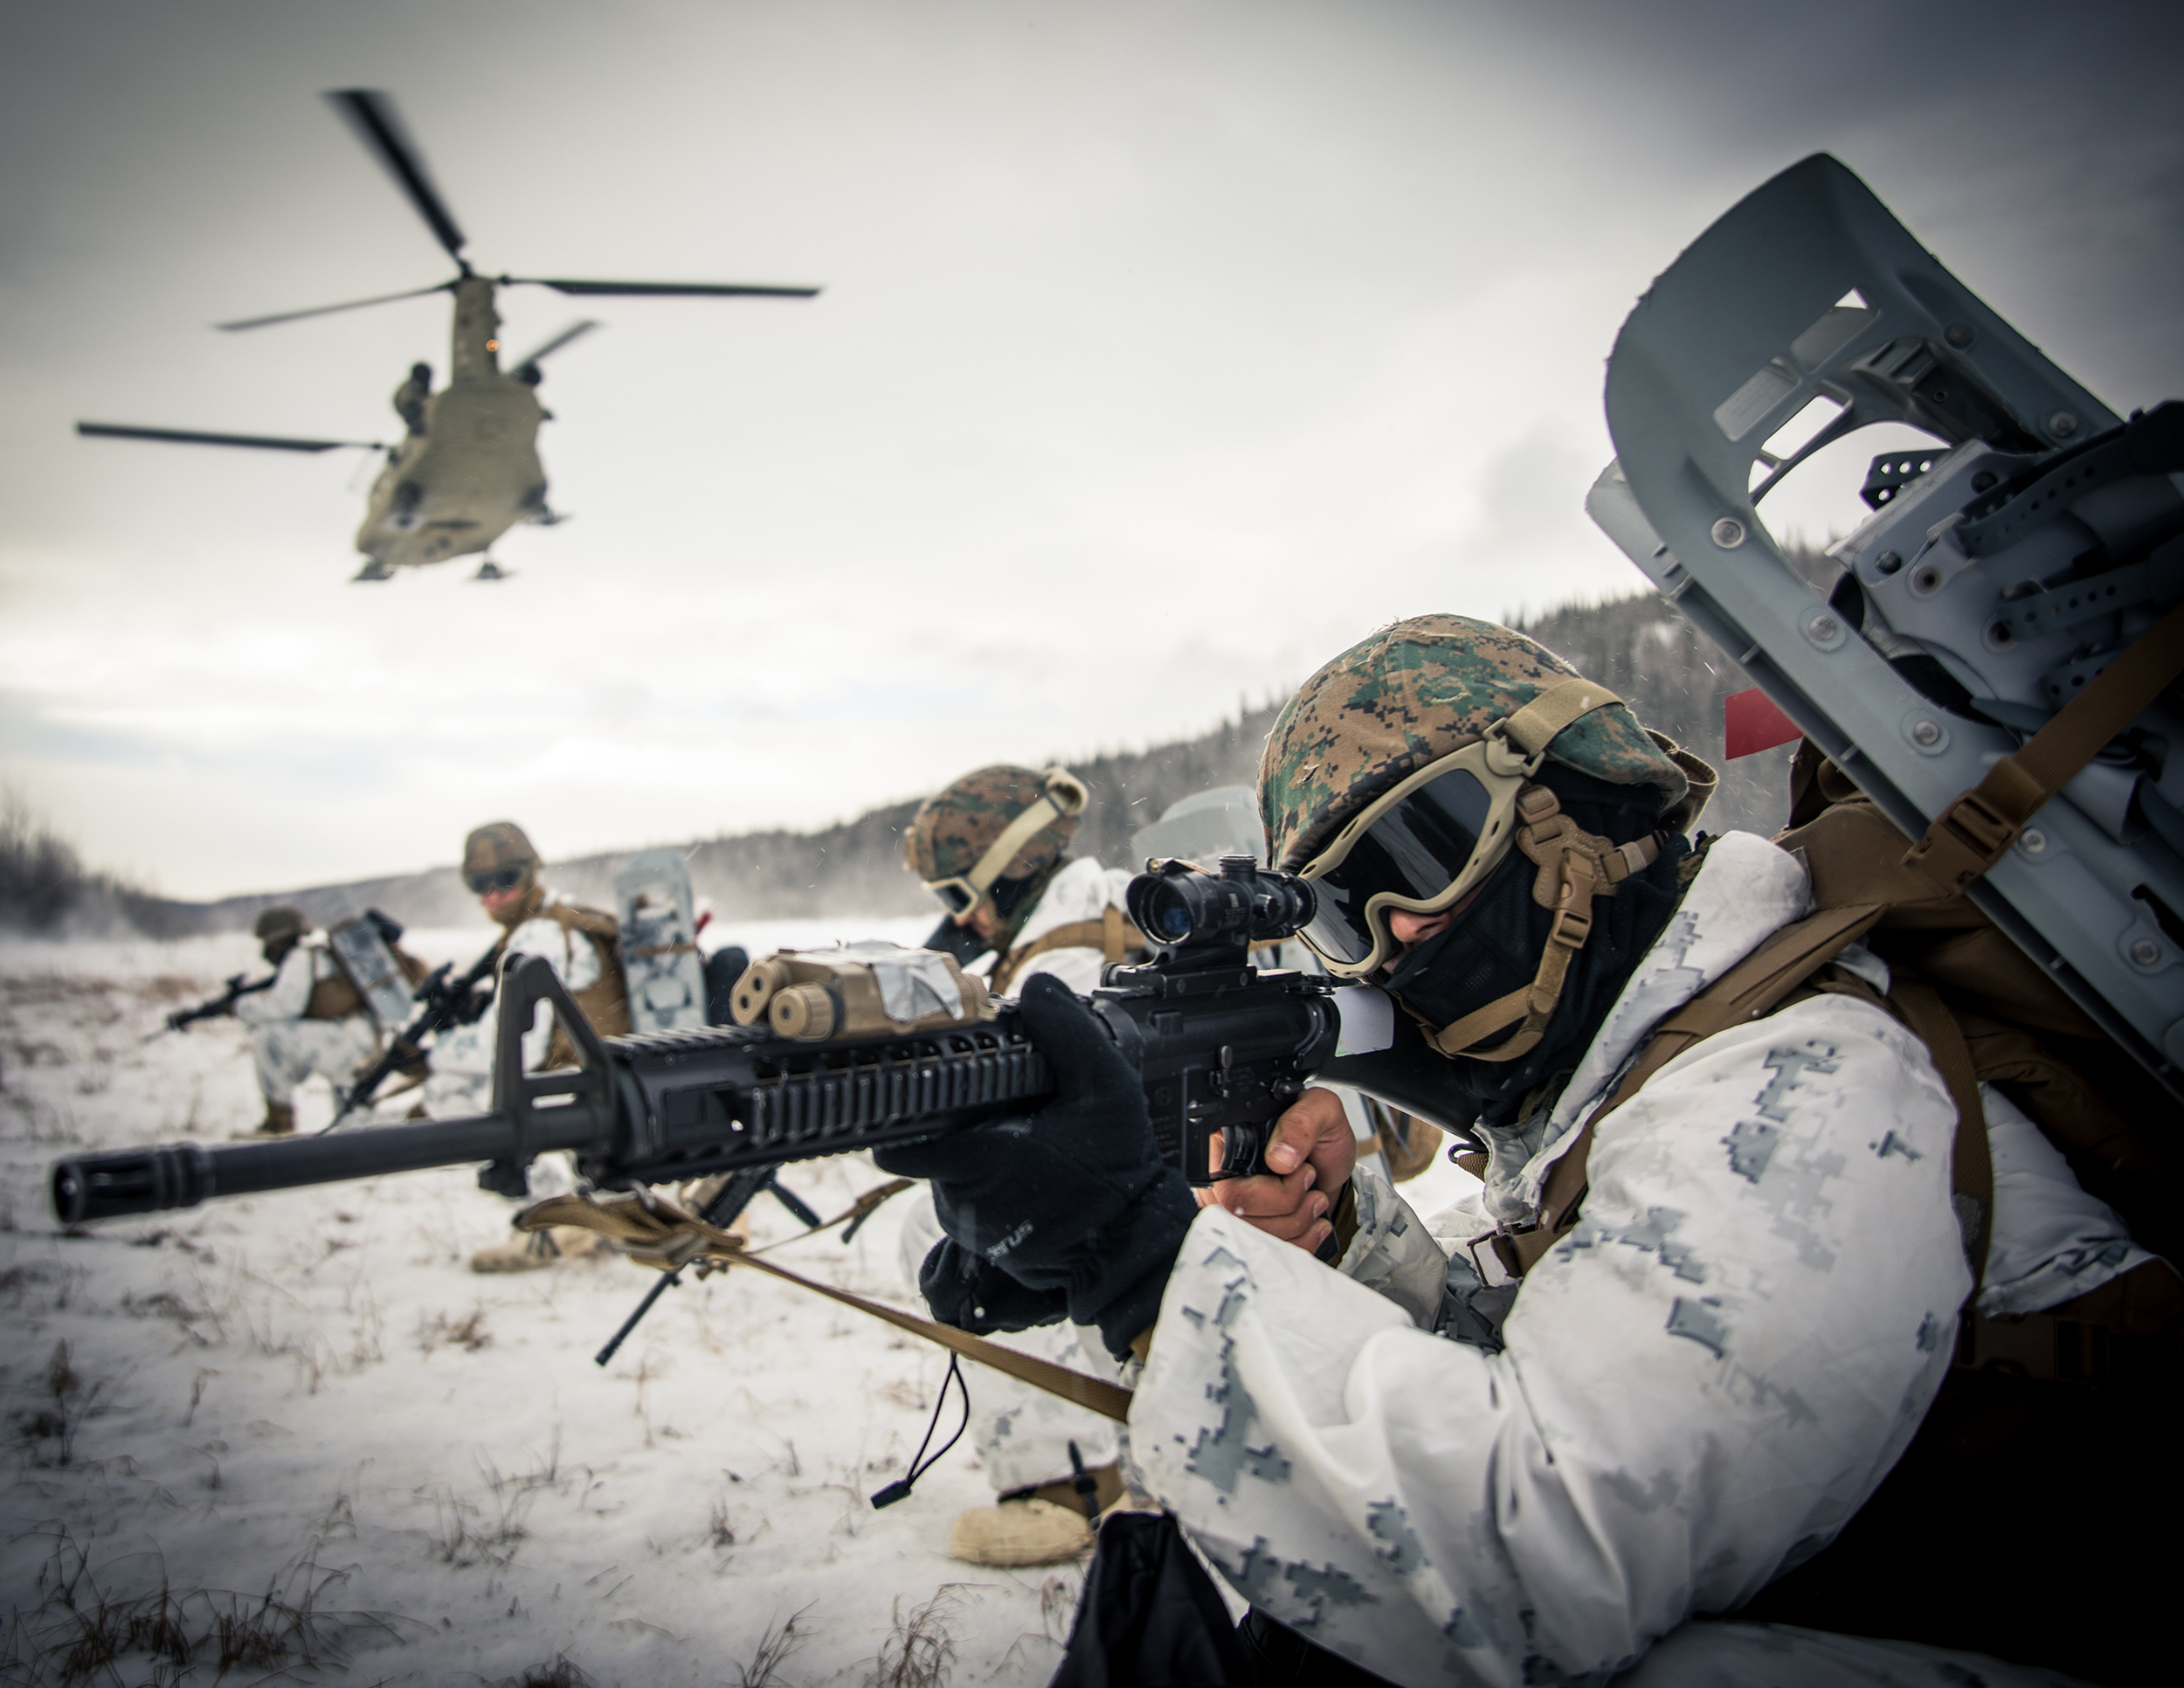 Lance Cpl. Andrew Z. Munoz, right, a motor vehicle operator with 7th Engineer Support Battalion, 1st Marine Logistic Group, provides security at Fort Greely, Alaska, Feb. 19, 2020, in preparation for exercise Arctic Edge 2020. (Lance Cpl. Jose Gonzalez/Marine Corps)